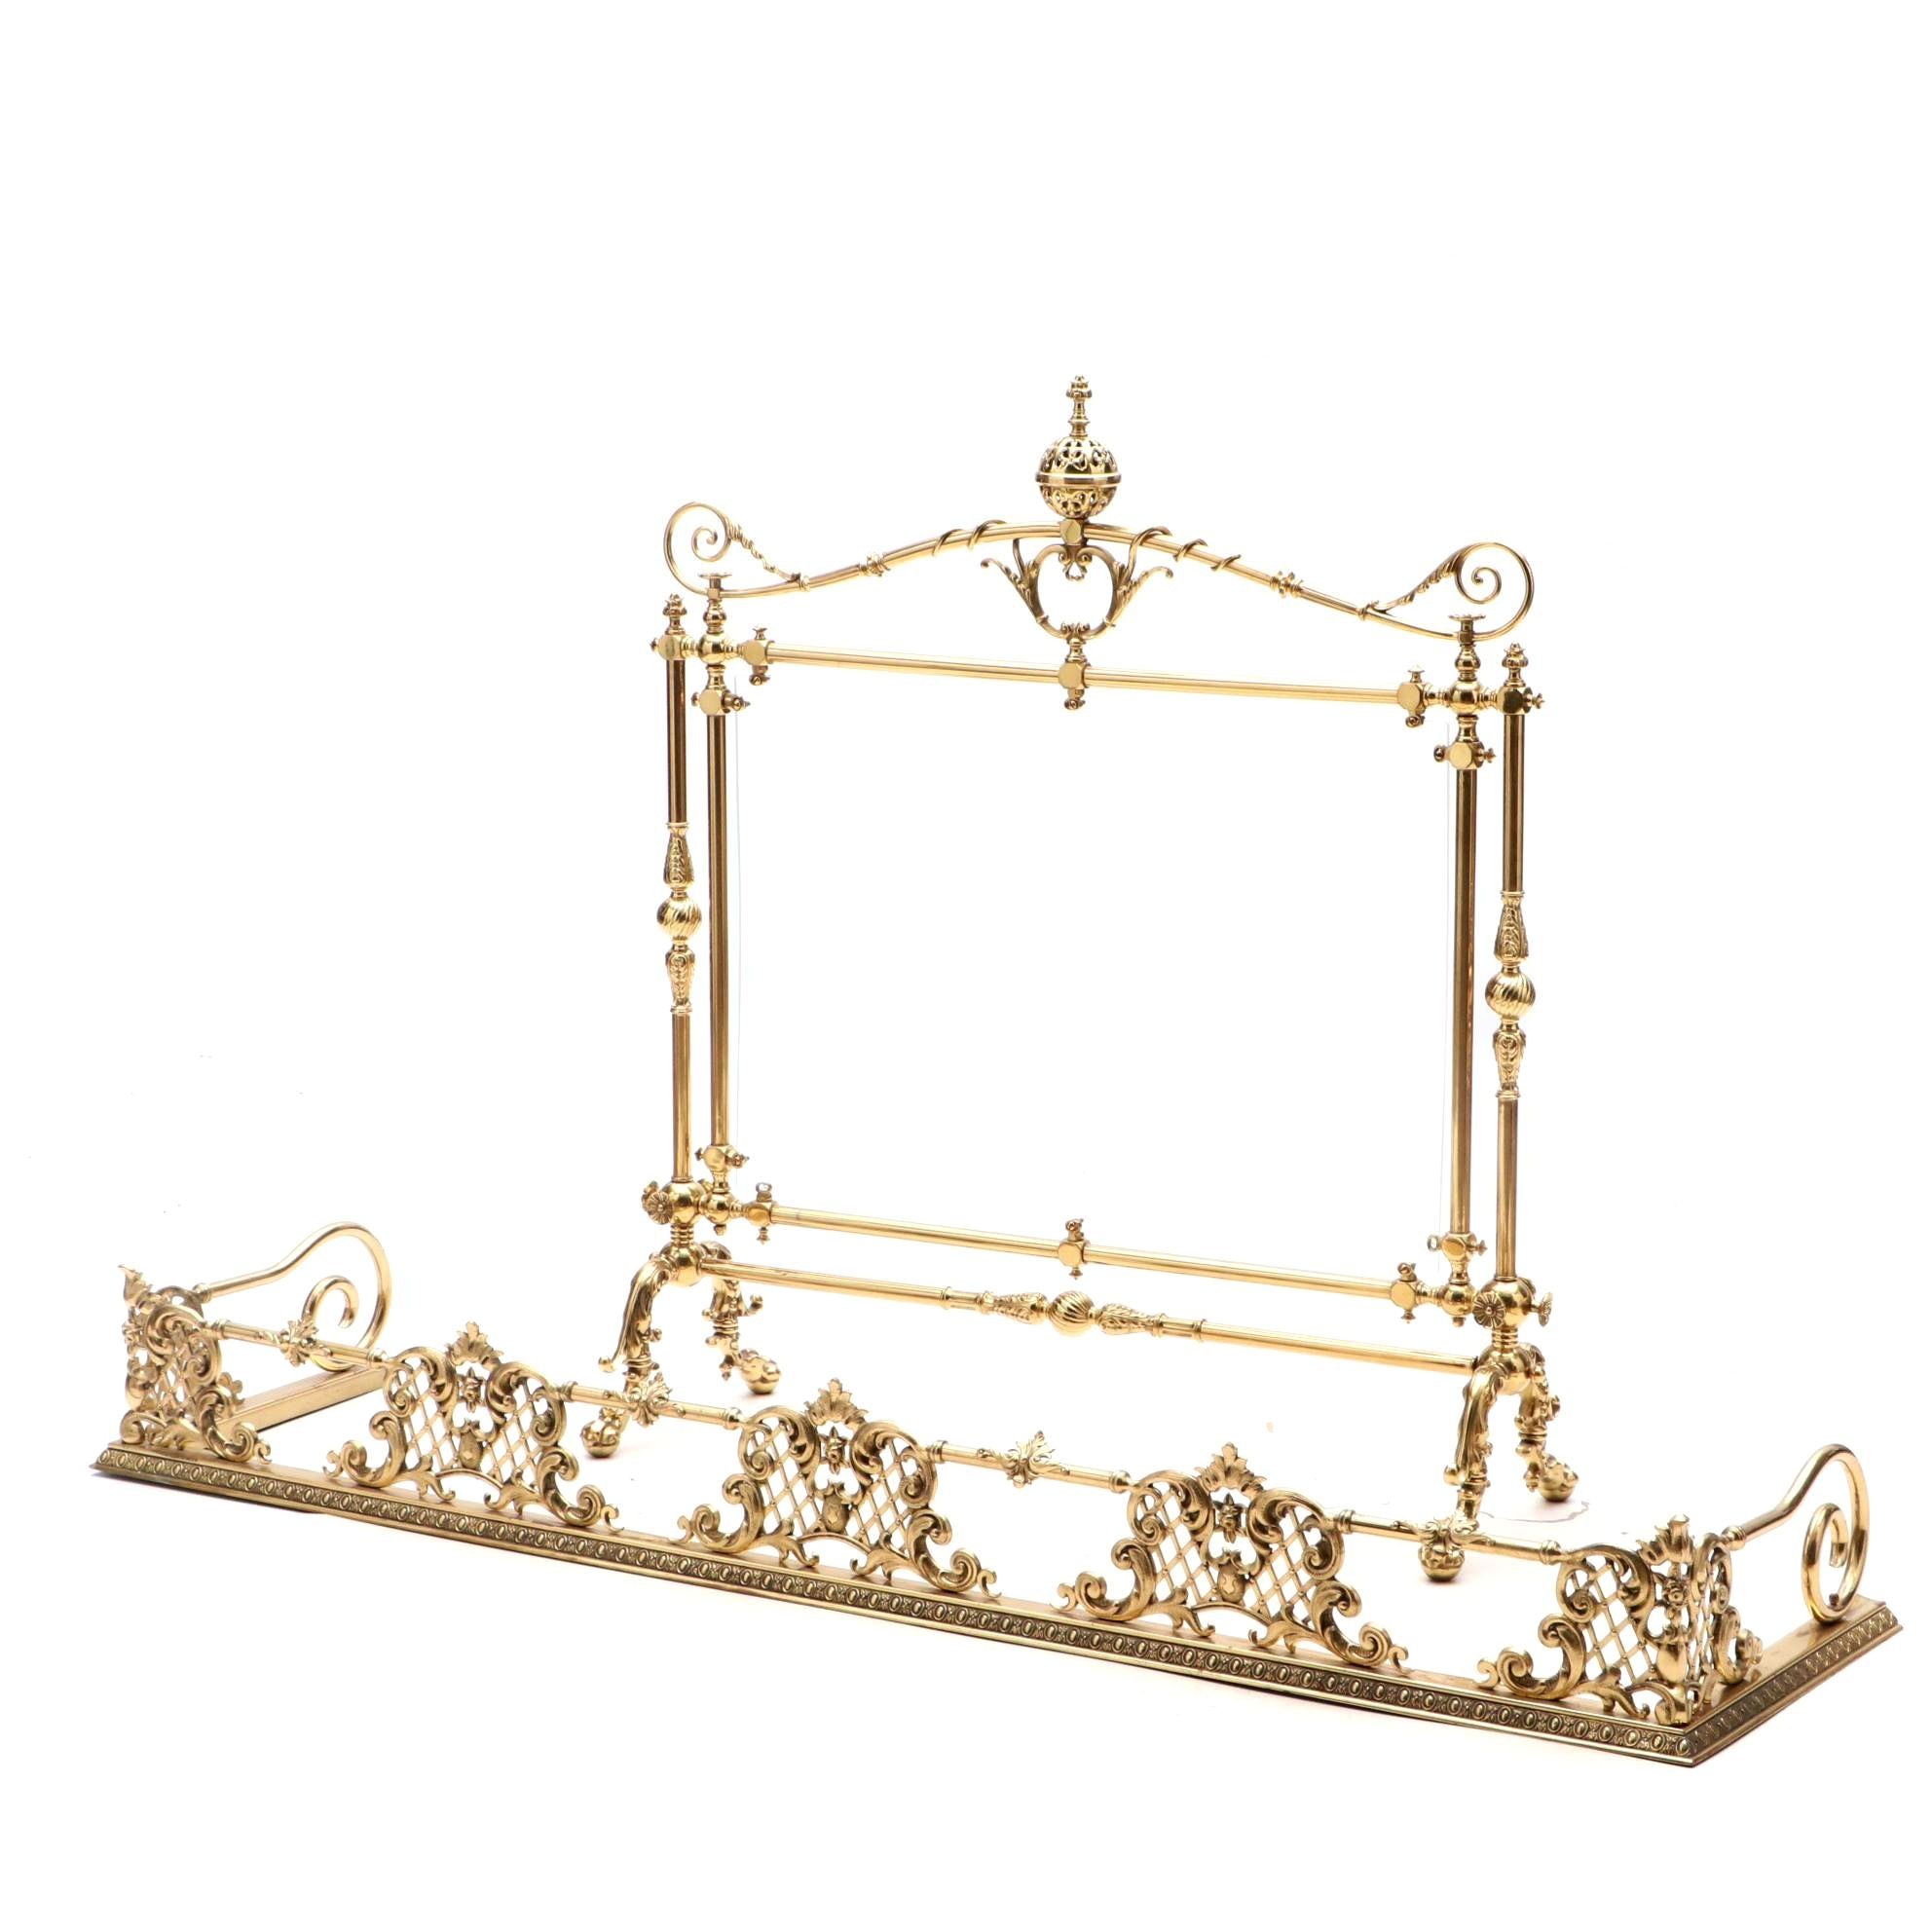 Cast Brass Rococo Style Fender and Firescreen